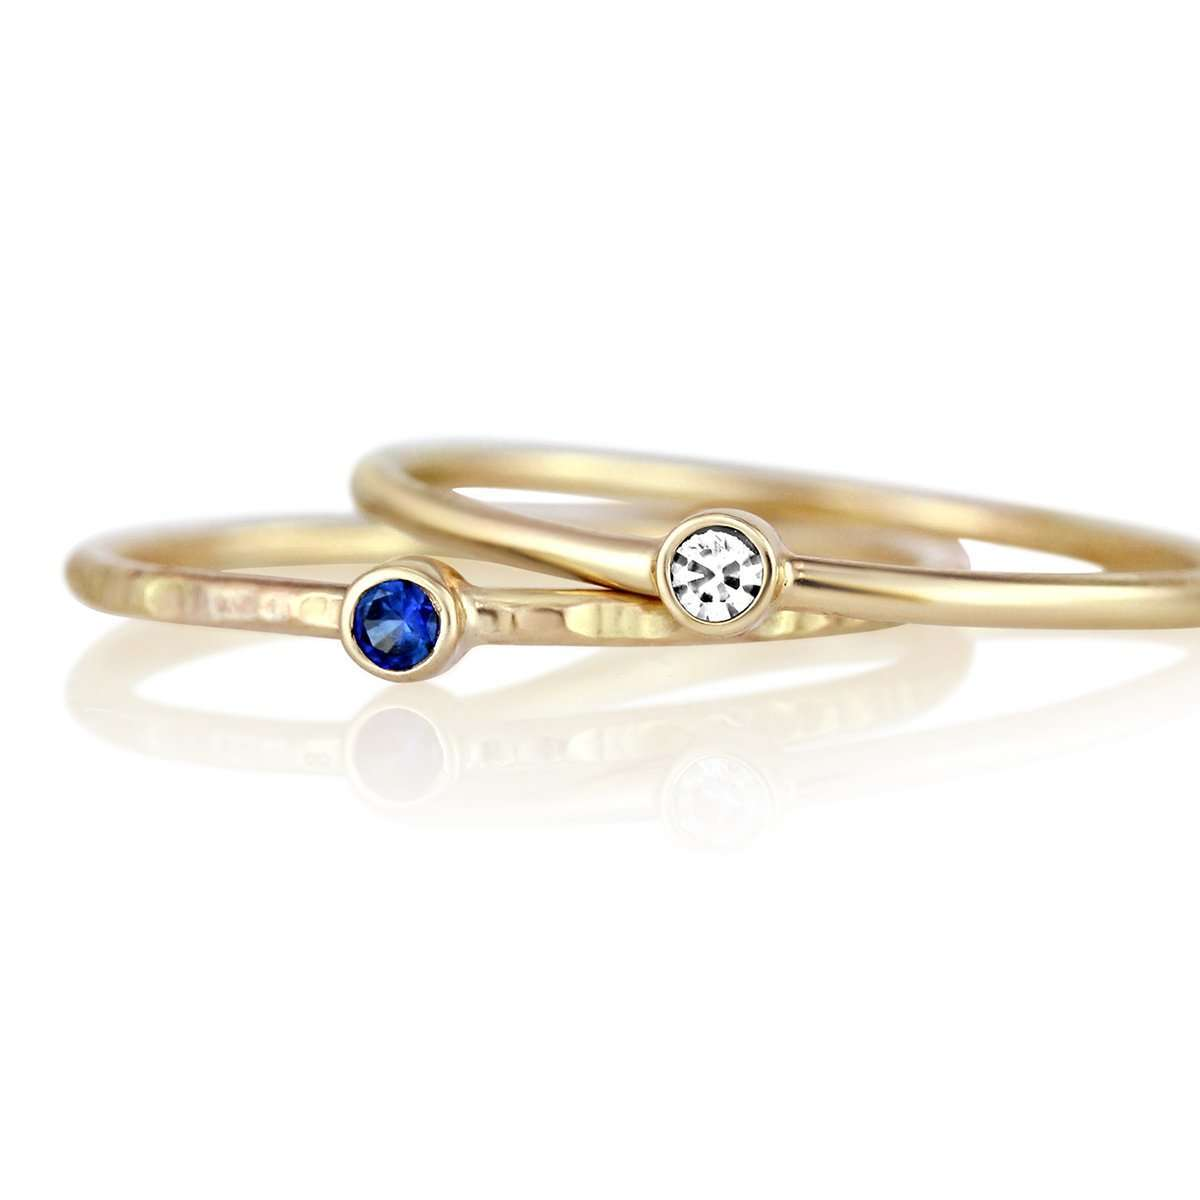 Petite Round Gemstone Ring-Alysha Whitfield